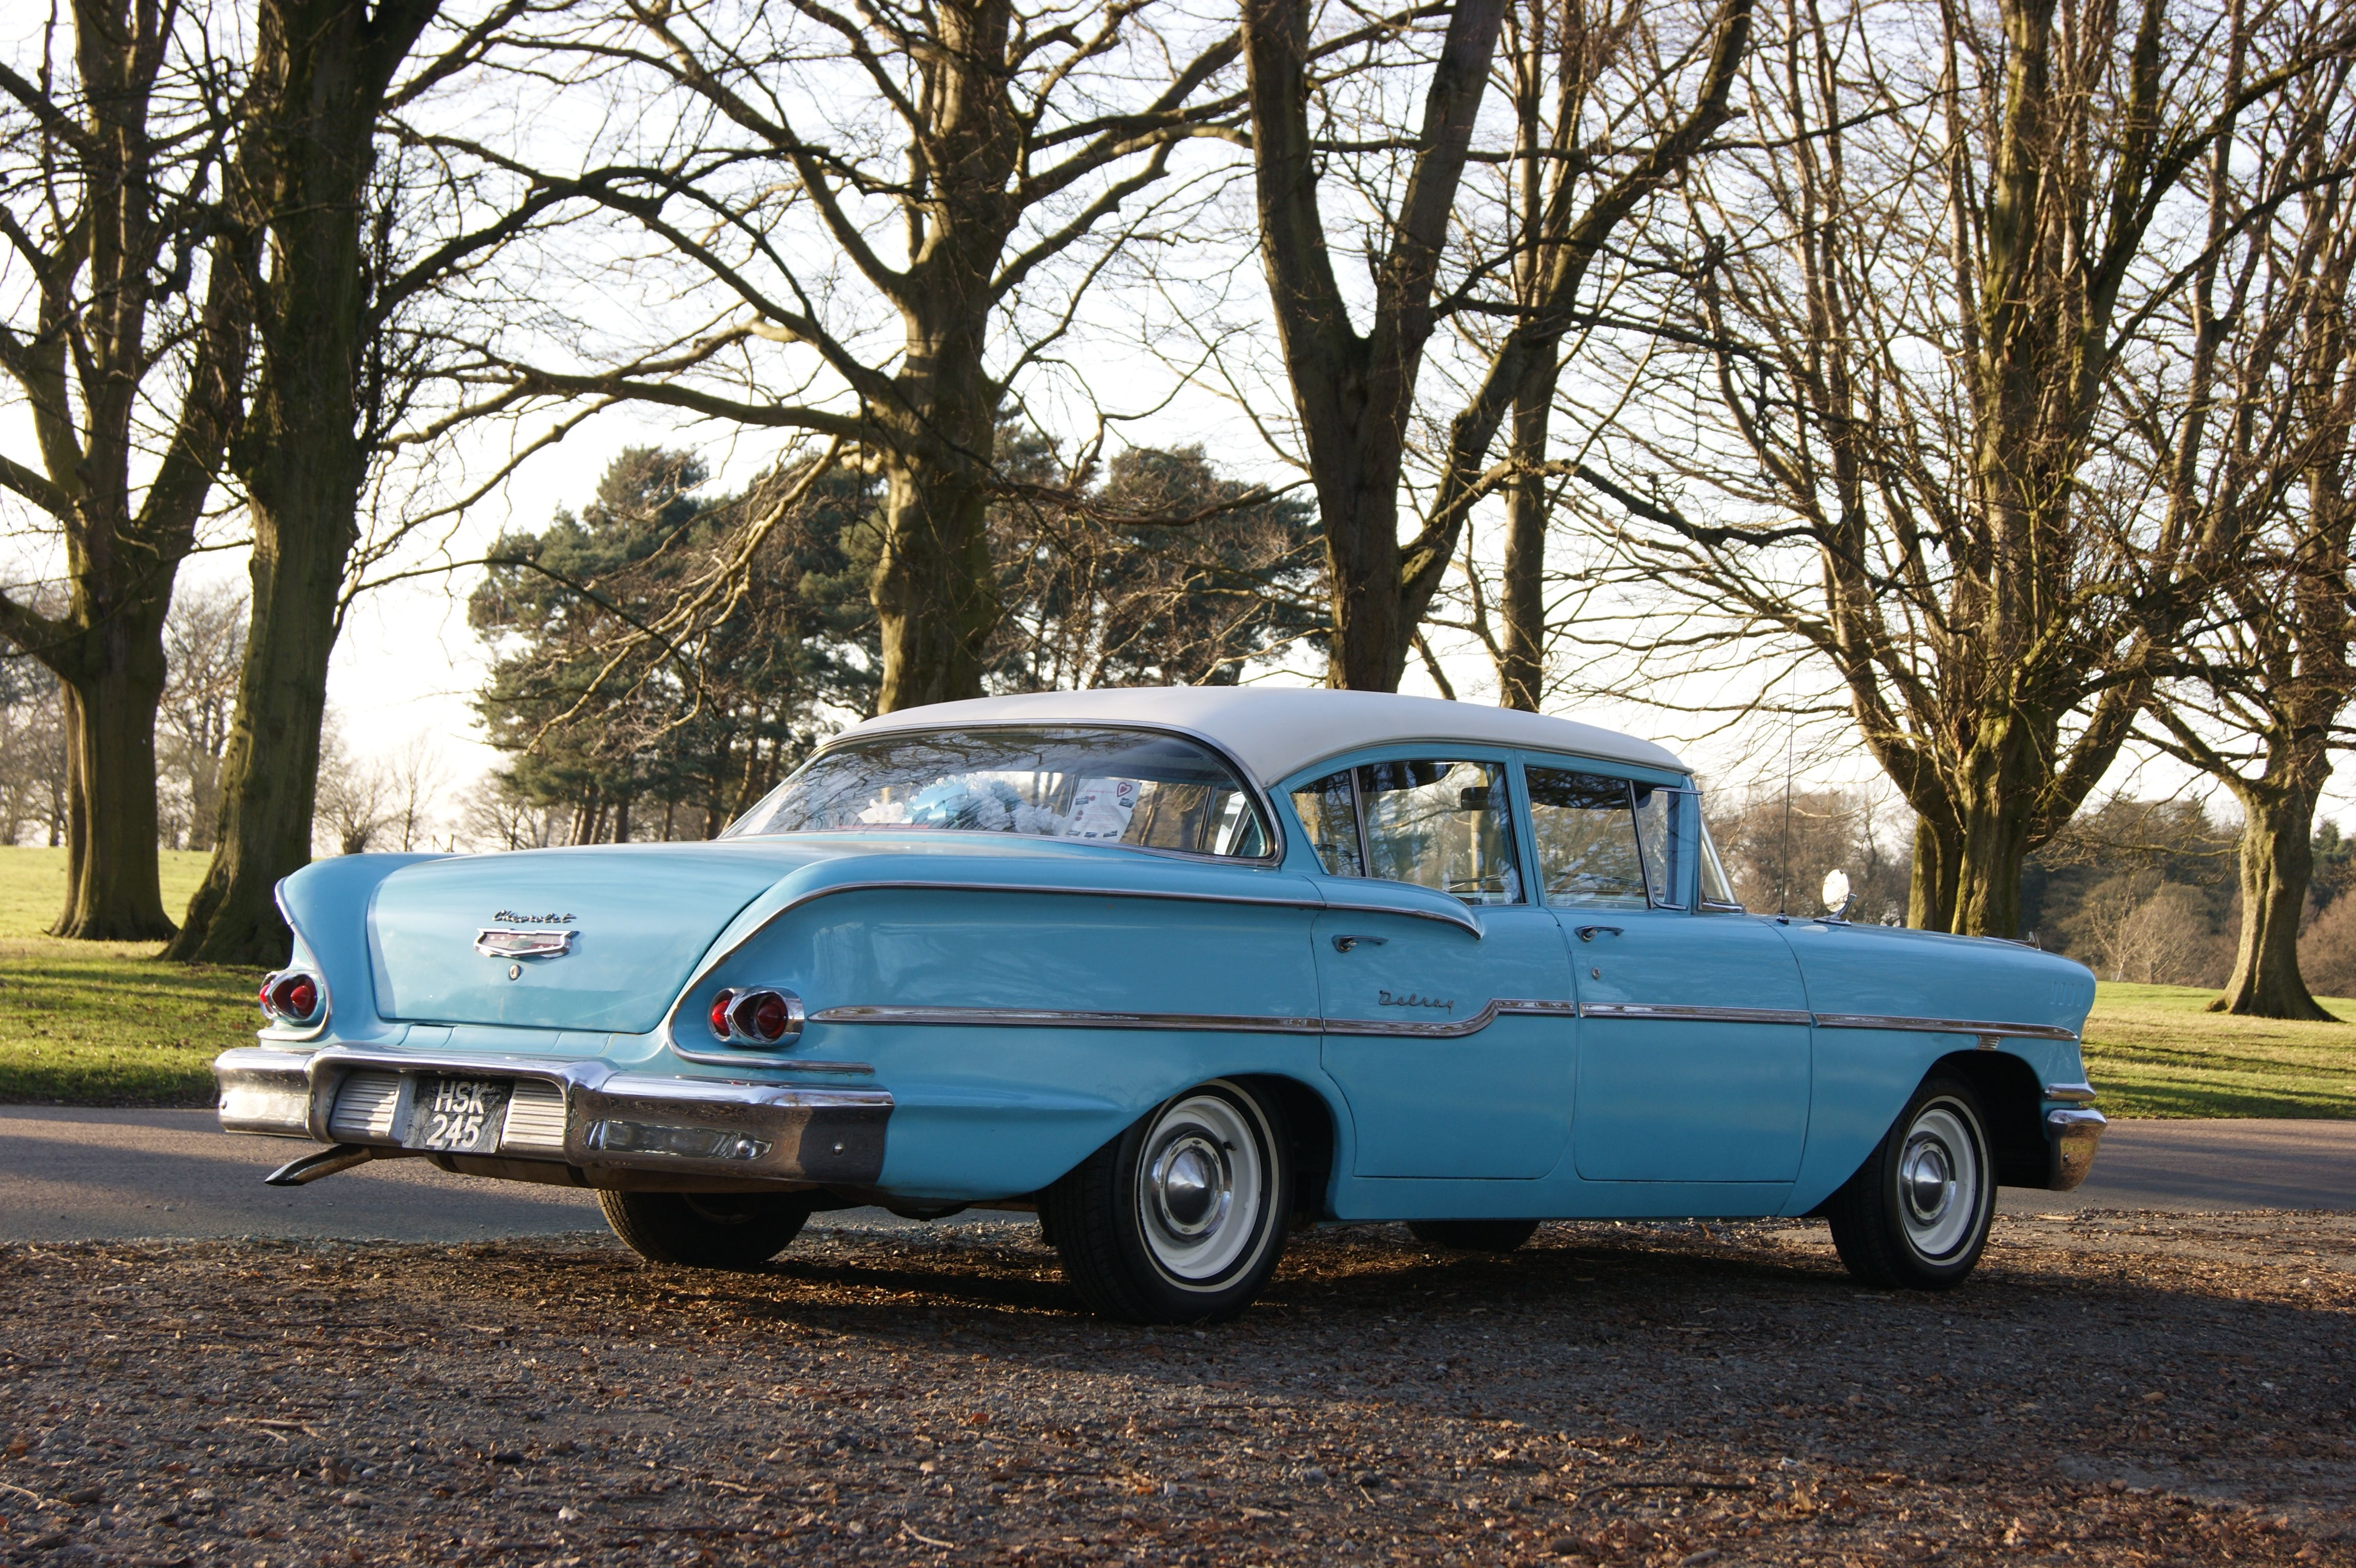 My 1958 Chevy Delray 235cu small block straight 6 My first American ...